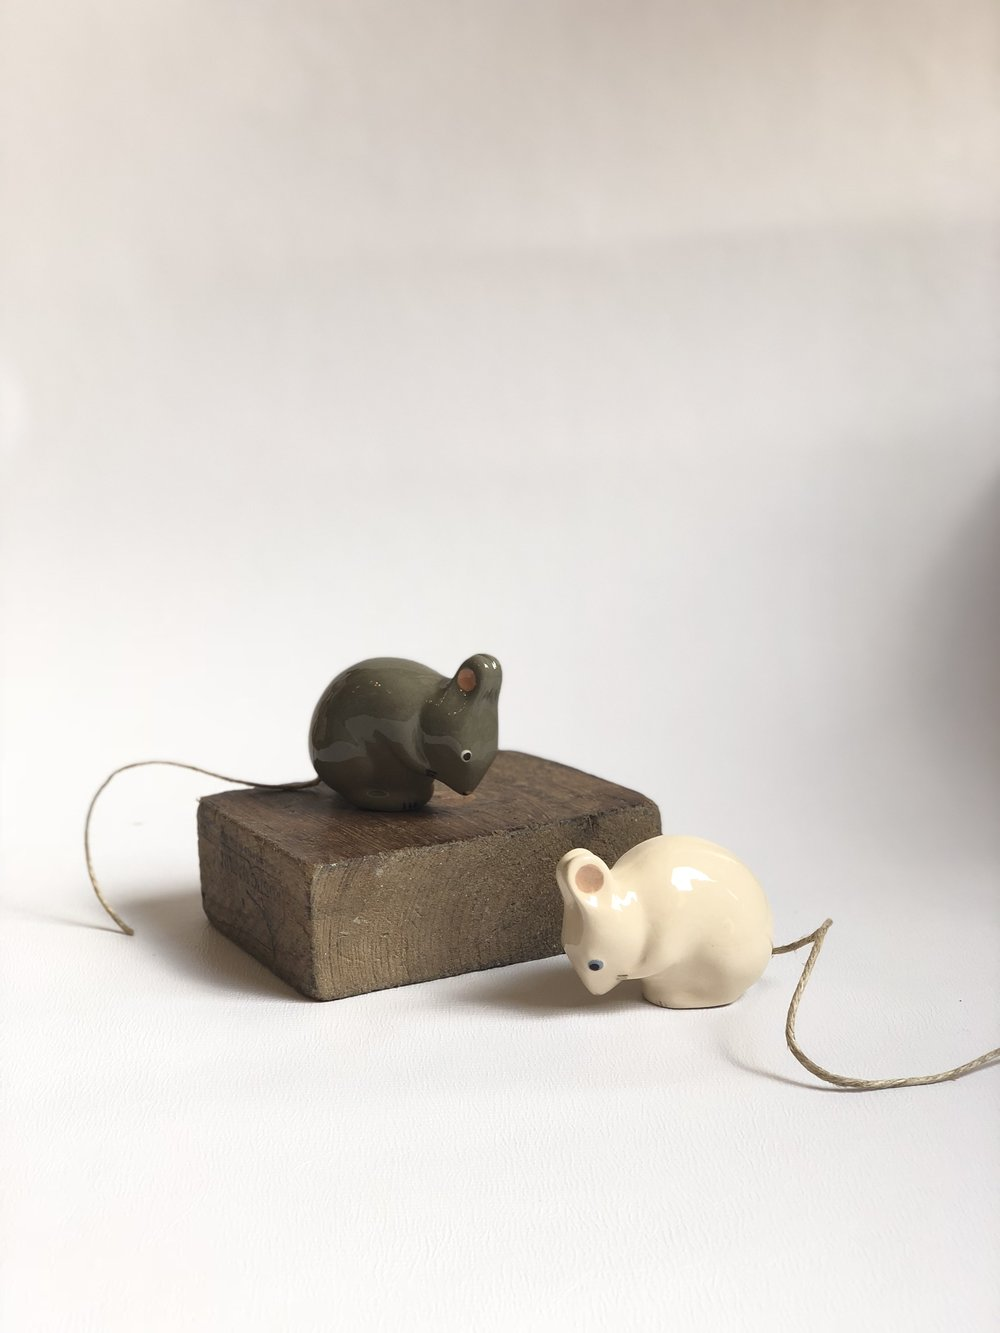 Handmade Pottery Mice $29.50 USD